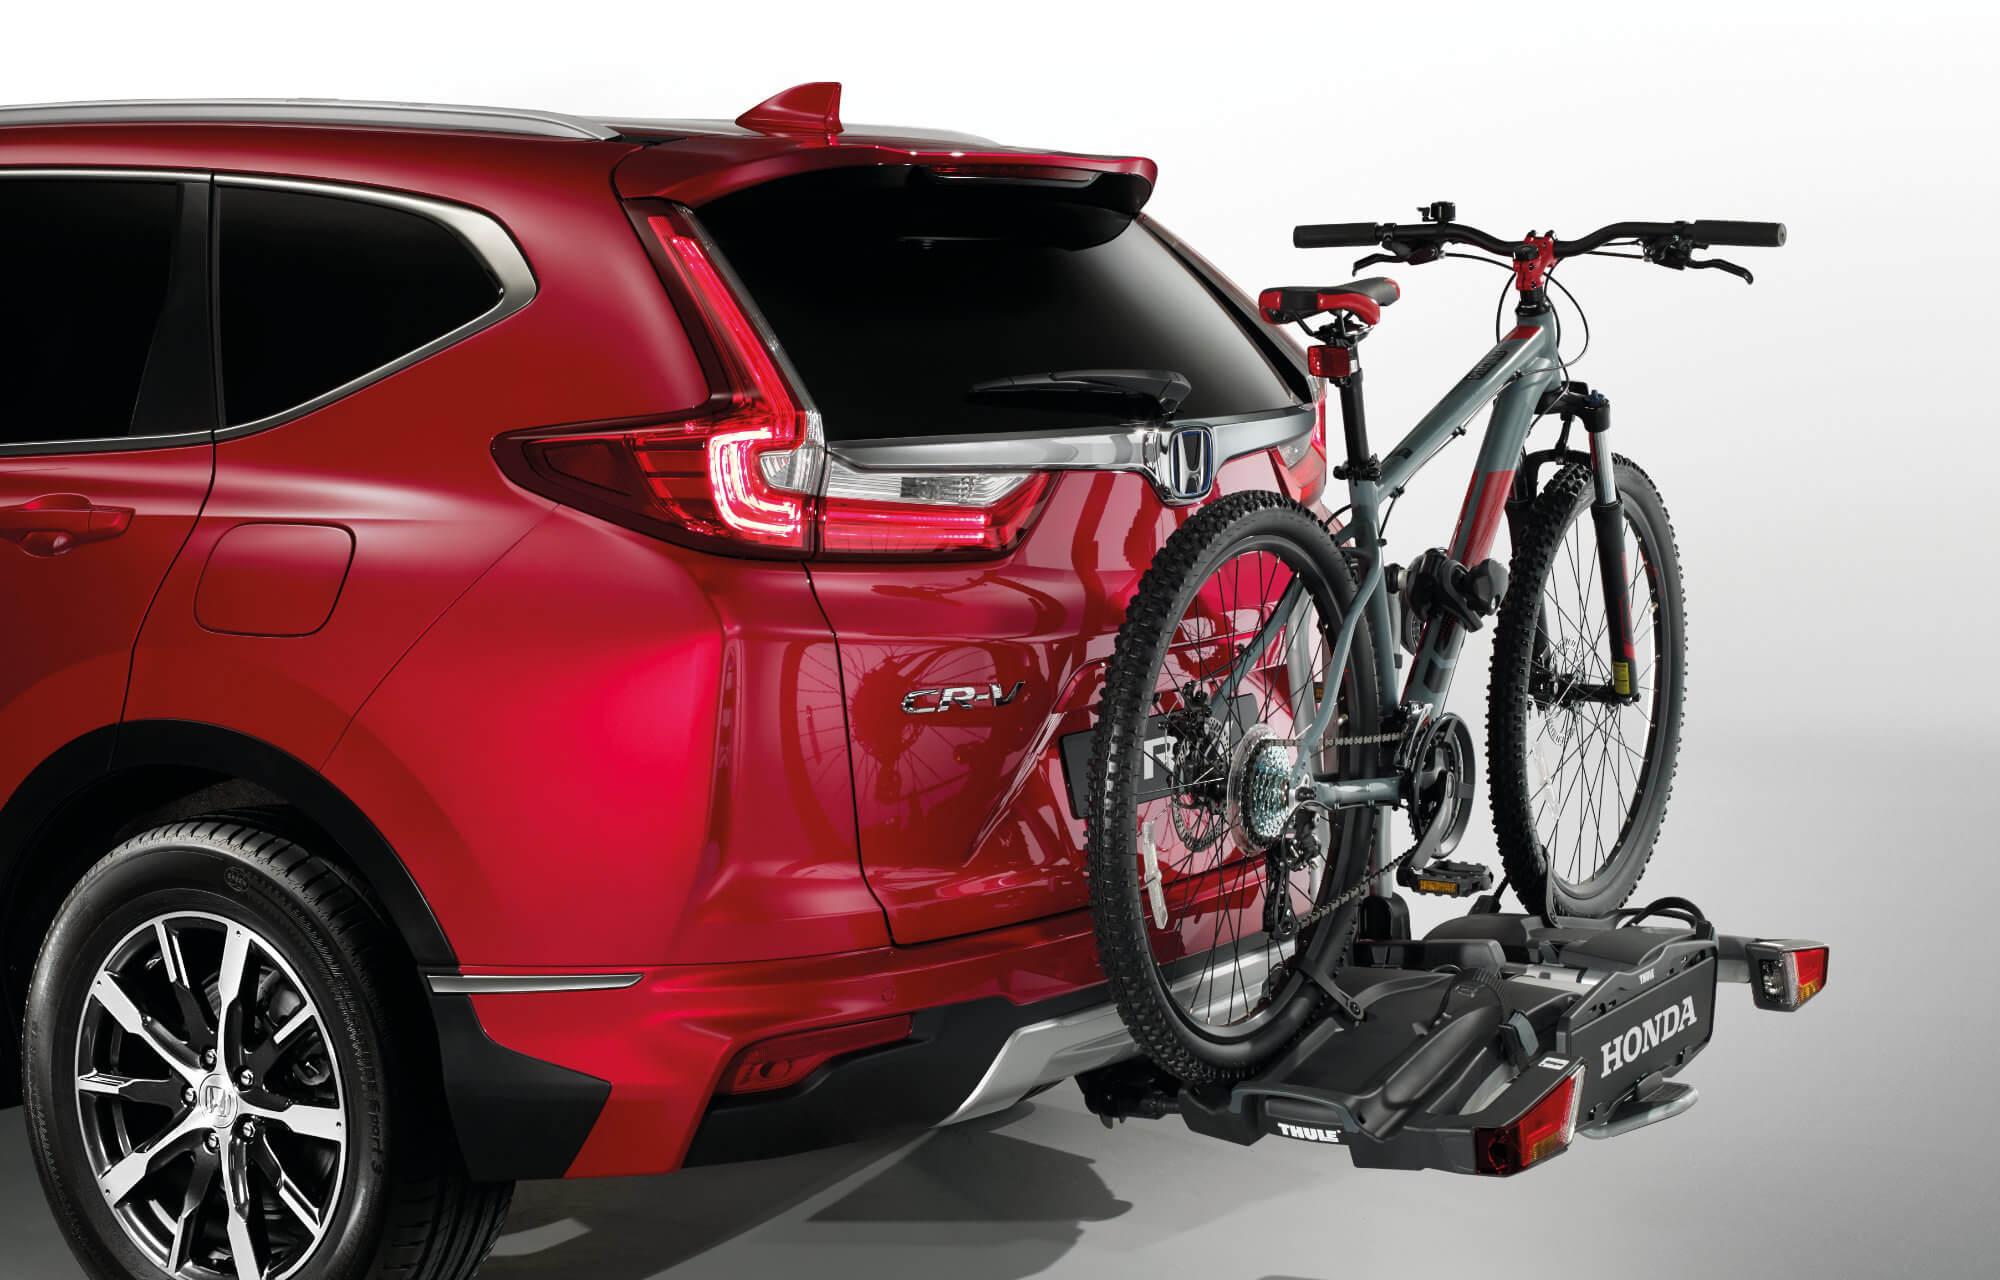 Thule Bicycle Carrier - Easyfold